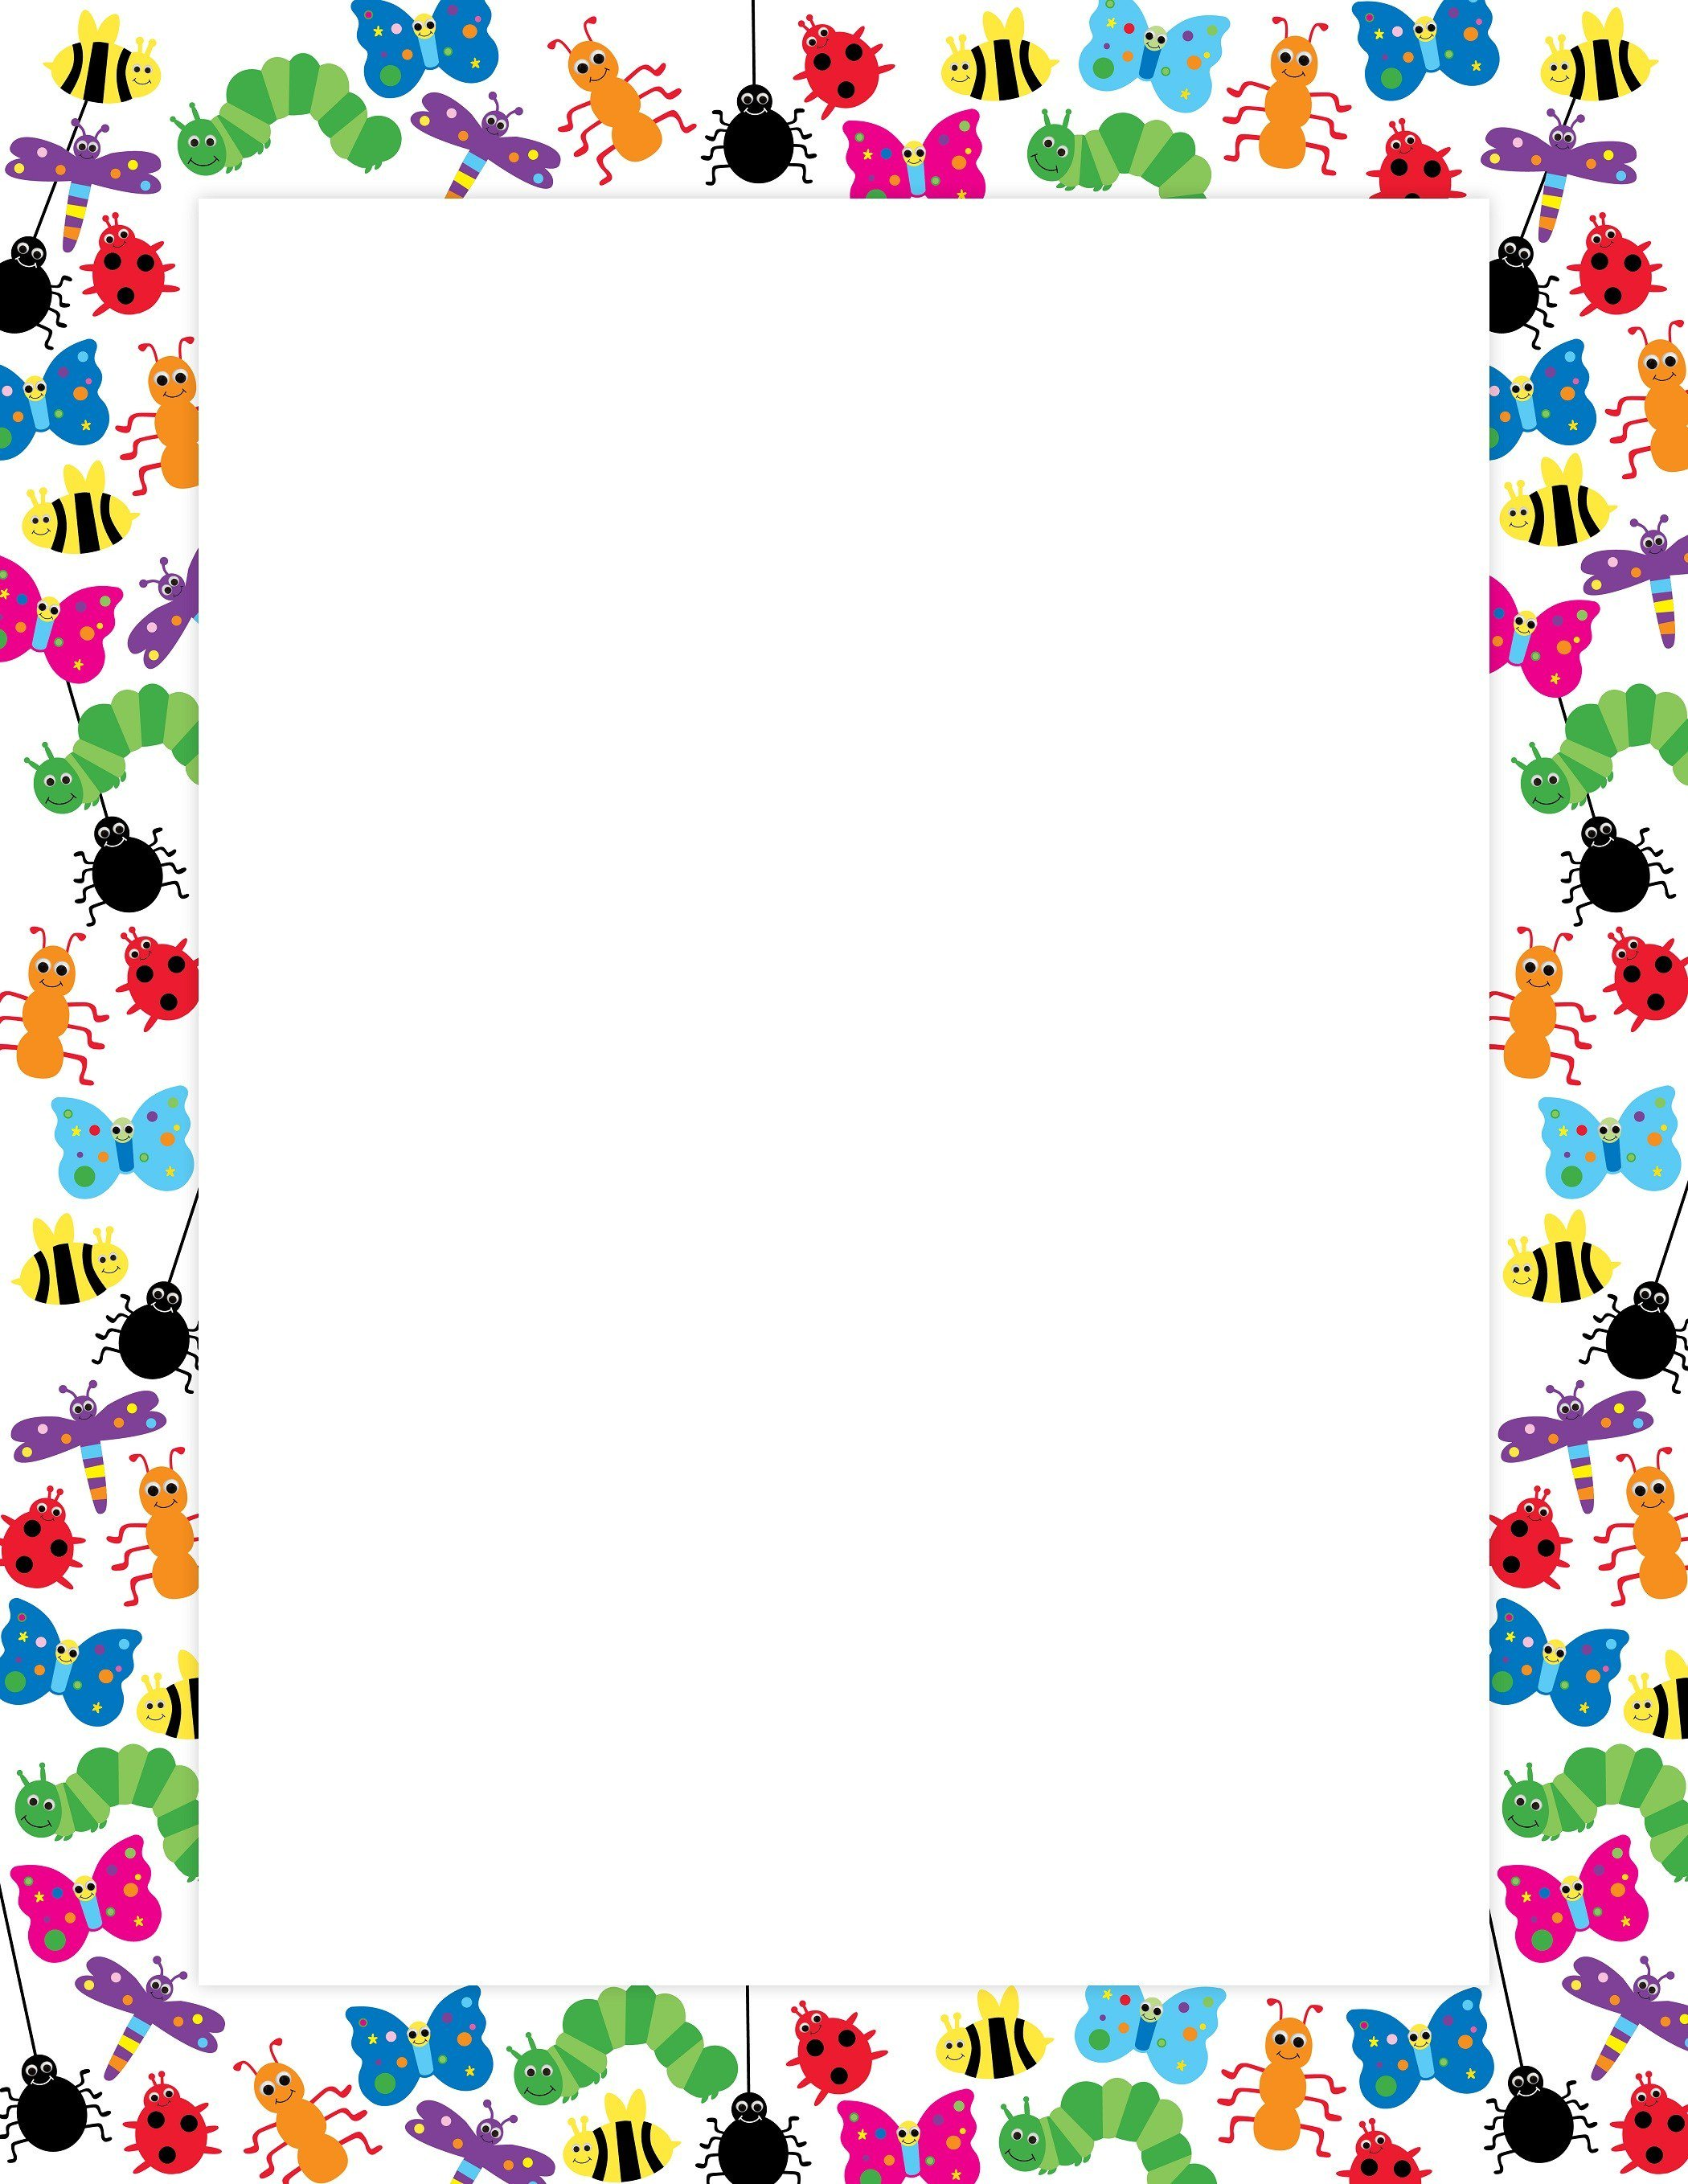 Bugs clipart border. Bug poster